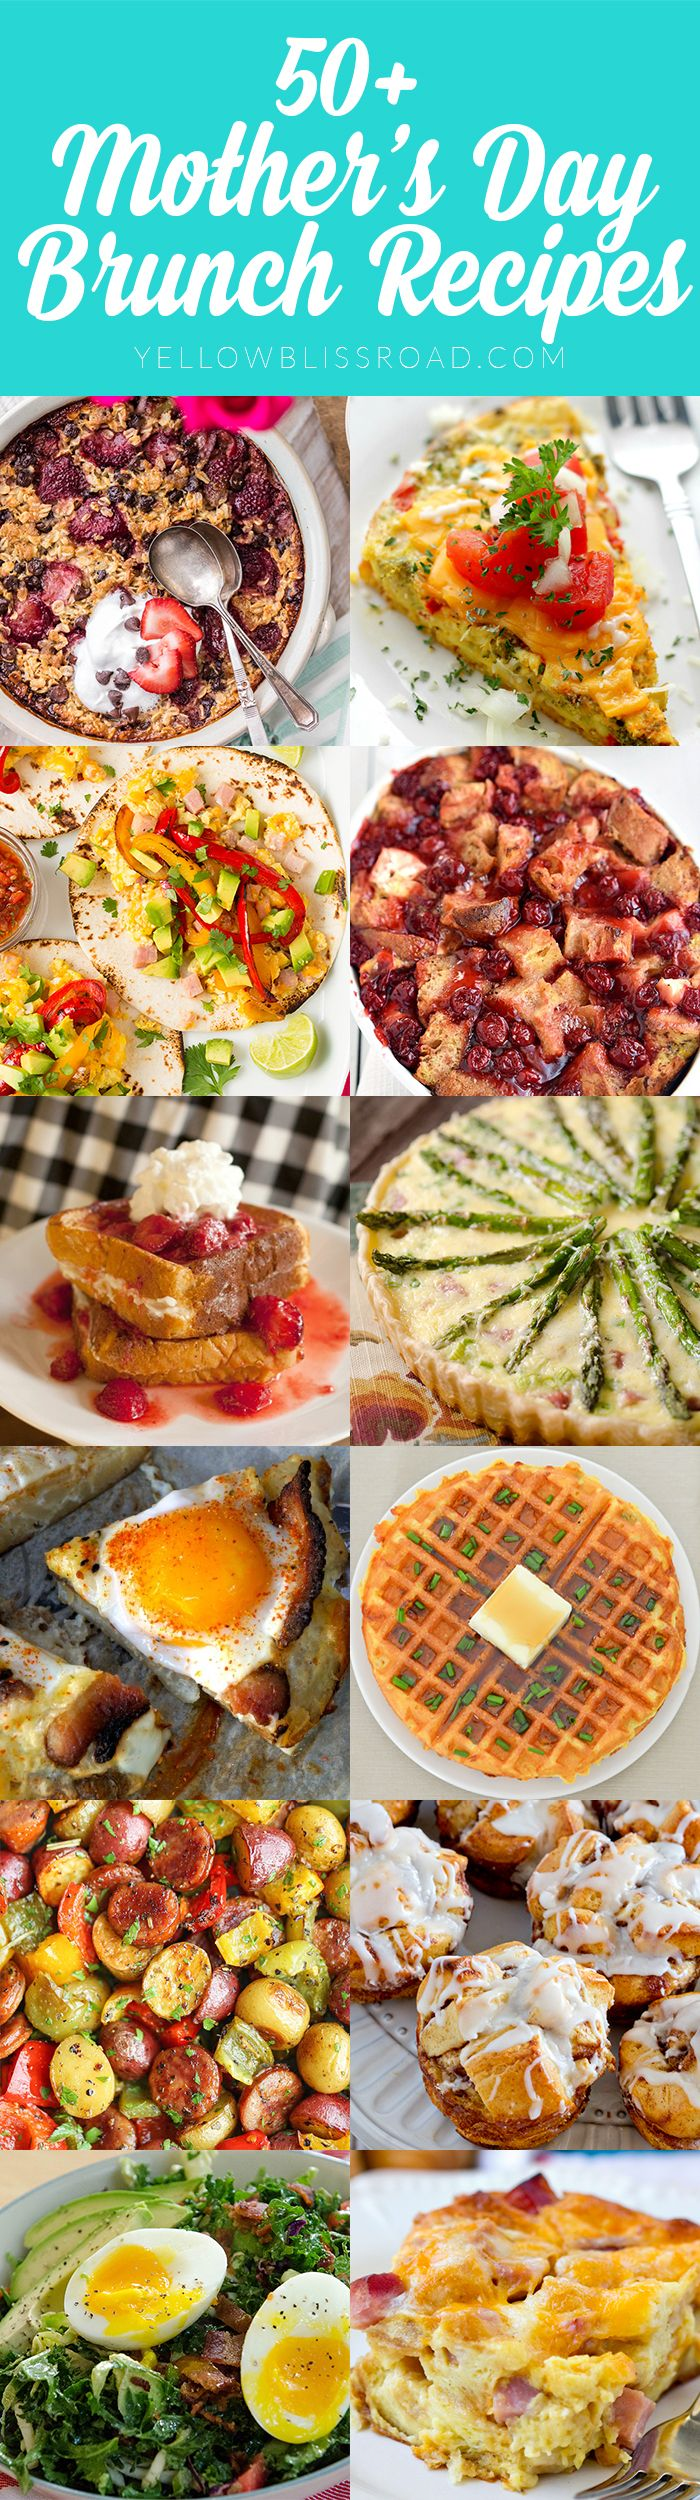 50 Delicious Mother's Day Brunch Recipes